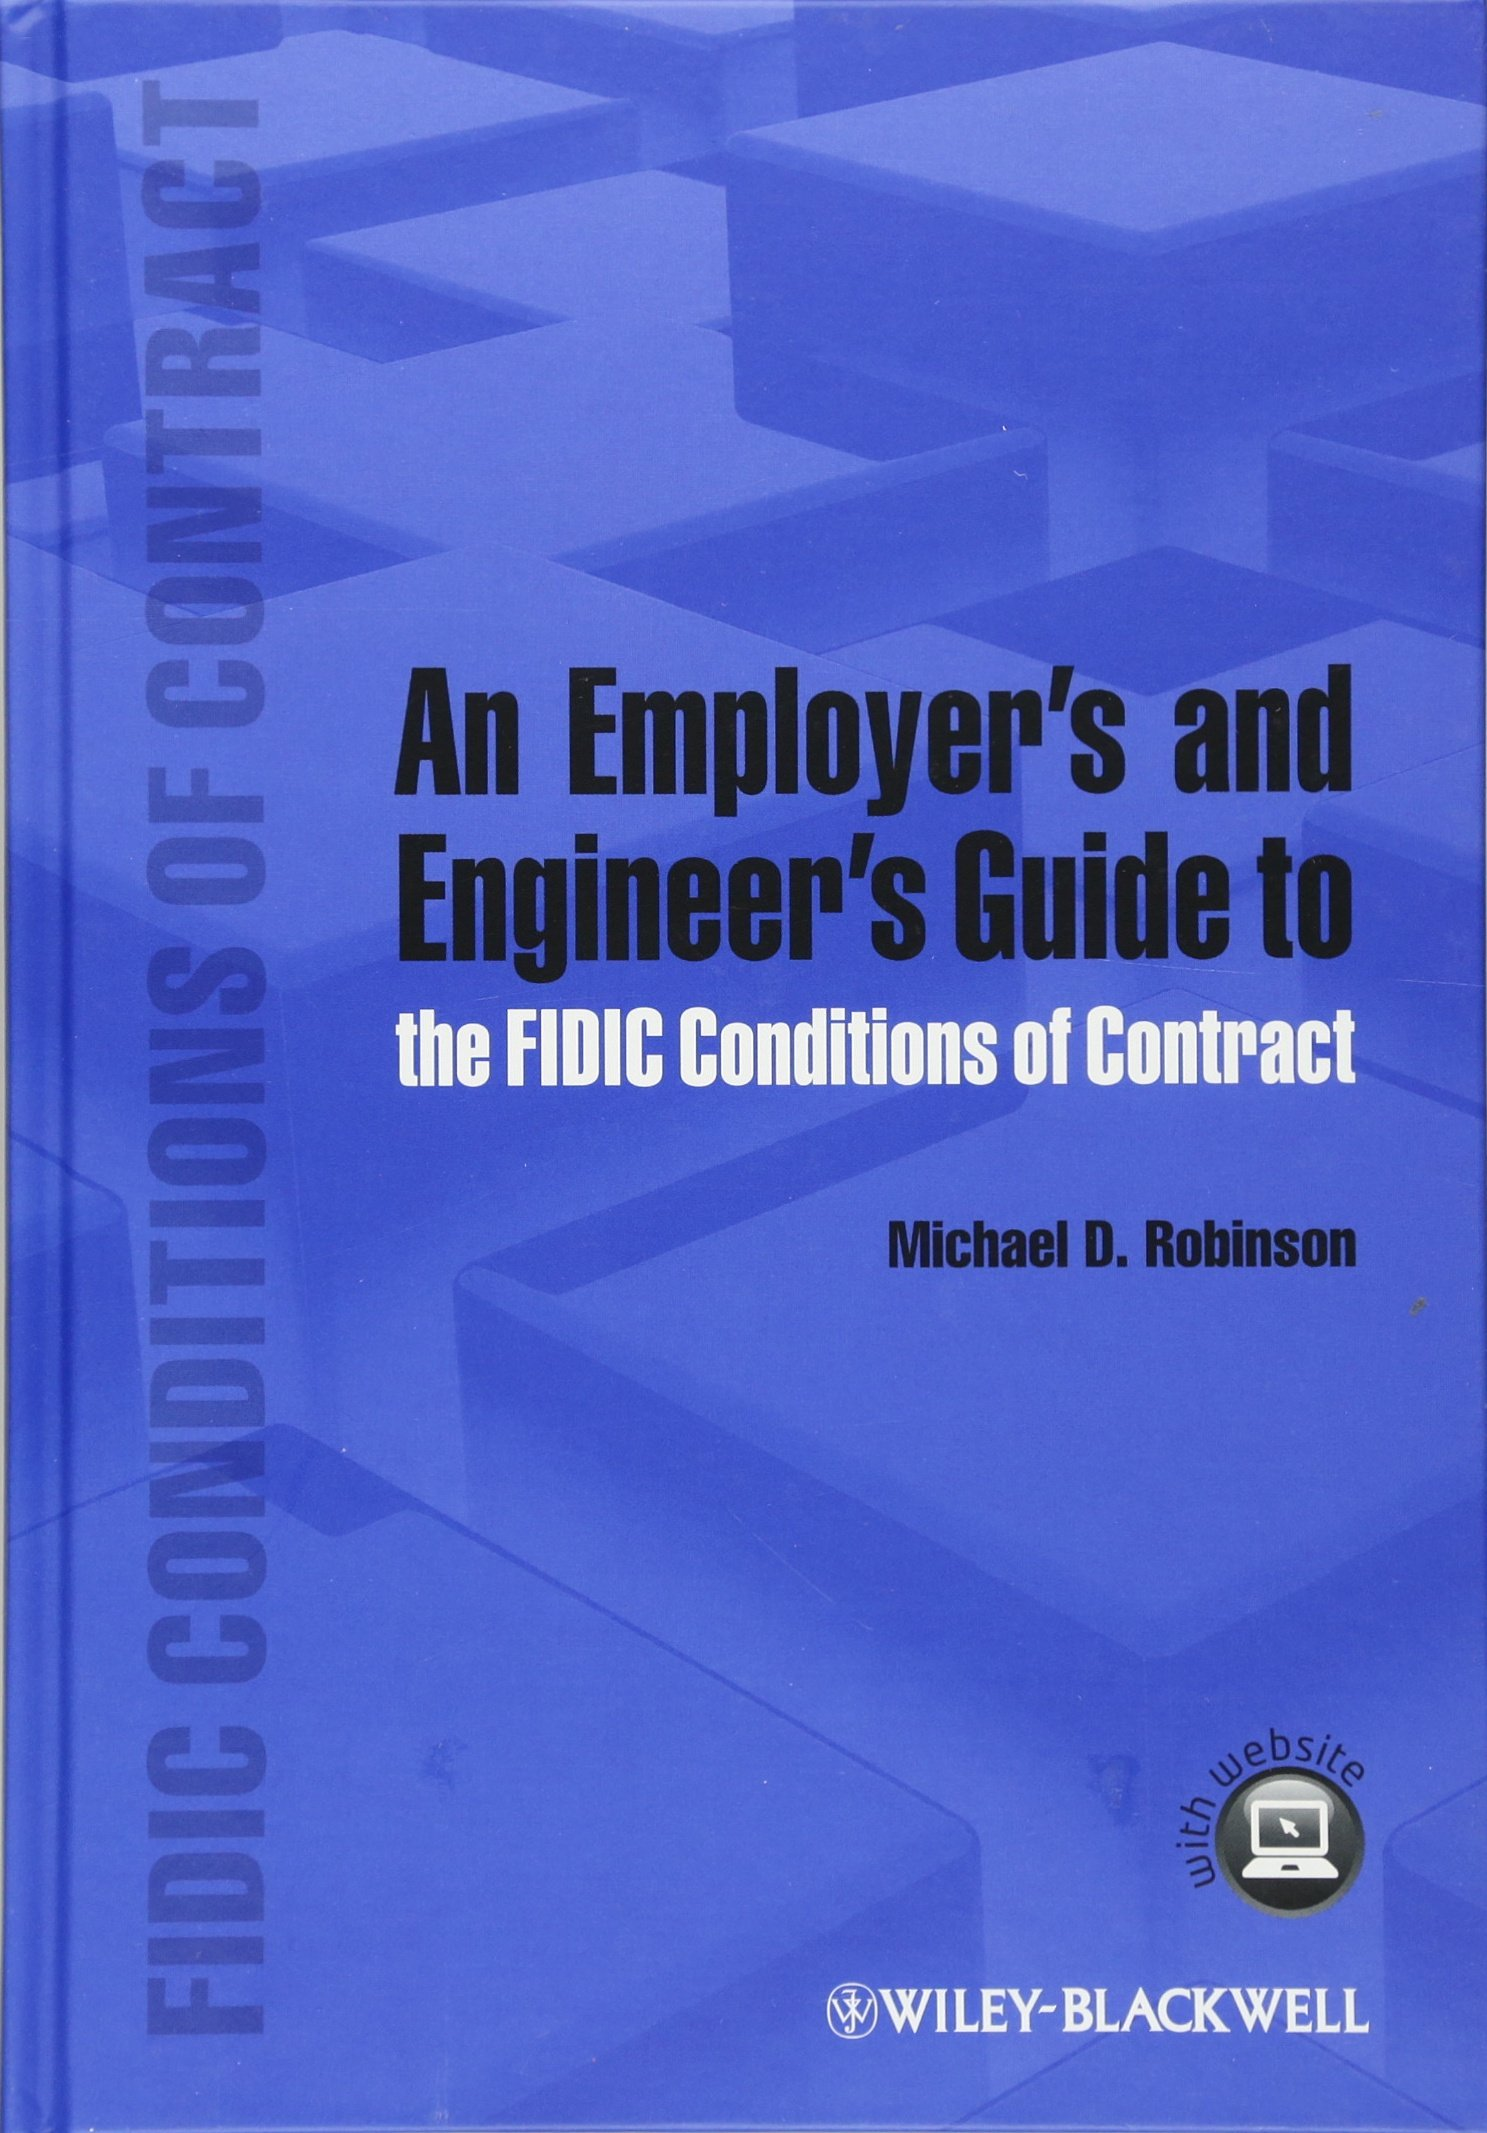 An Employer's and Engineer's Guide to the FIDIC Conditions of Contract:  Amazon.co.uk: Michael D. Robinson: 9781118385609: Books